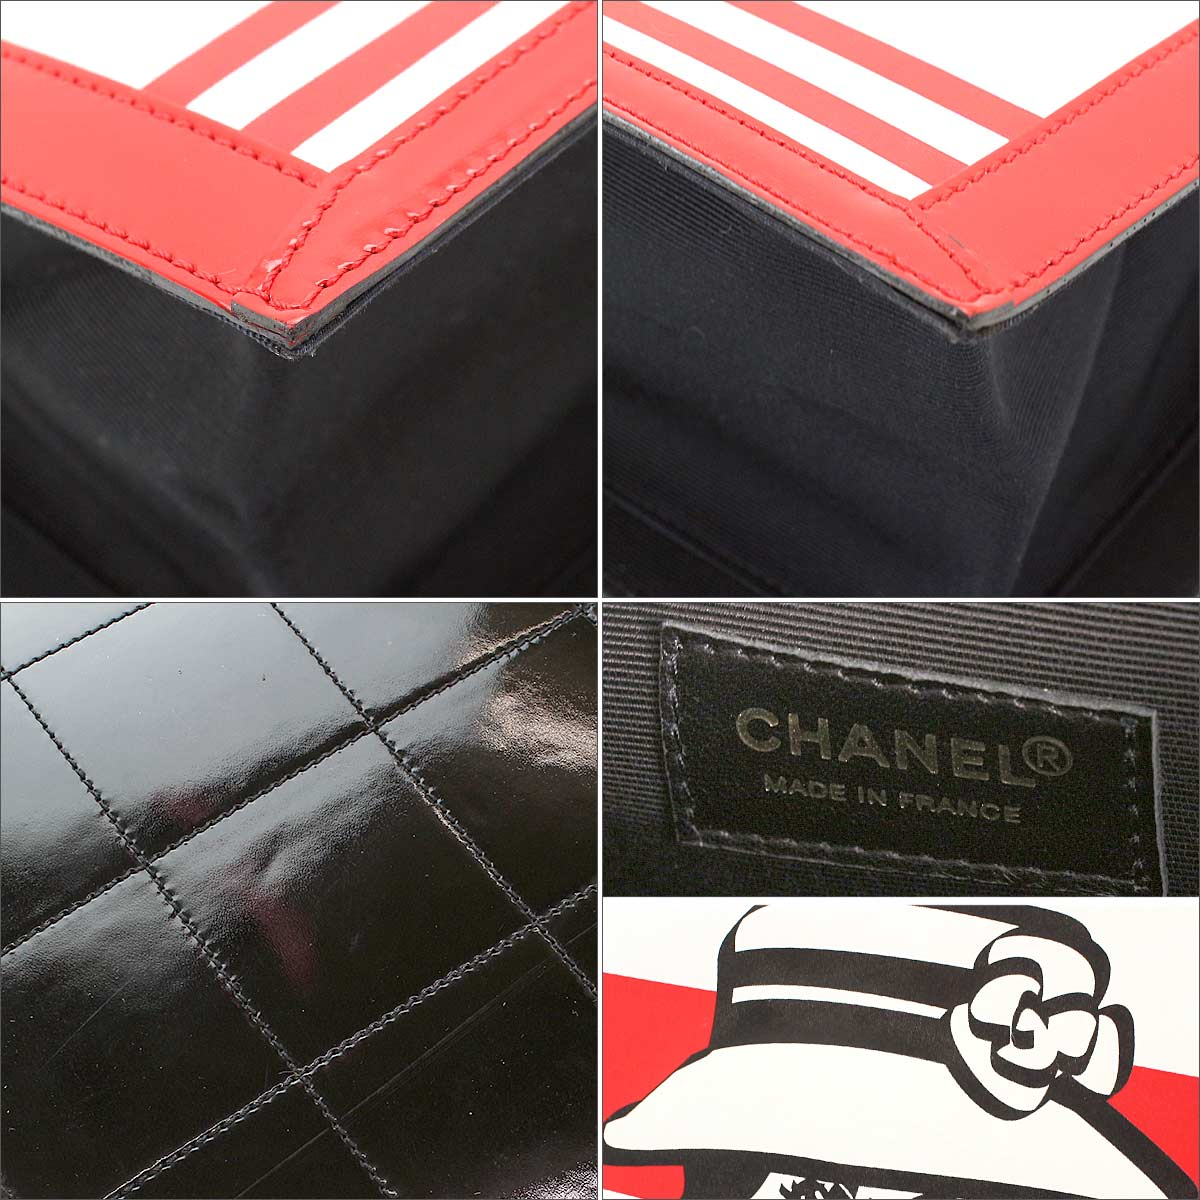 c51abdeecd46 Chanel CHANEL mademoiselle tote bag enamel leather red white Coco Chanel